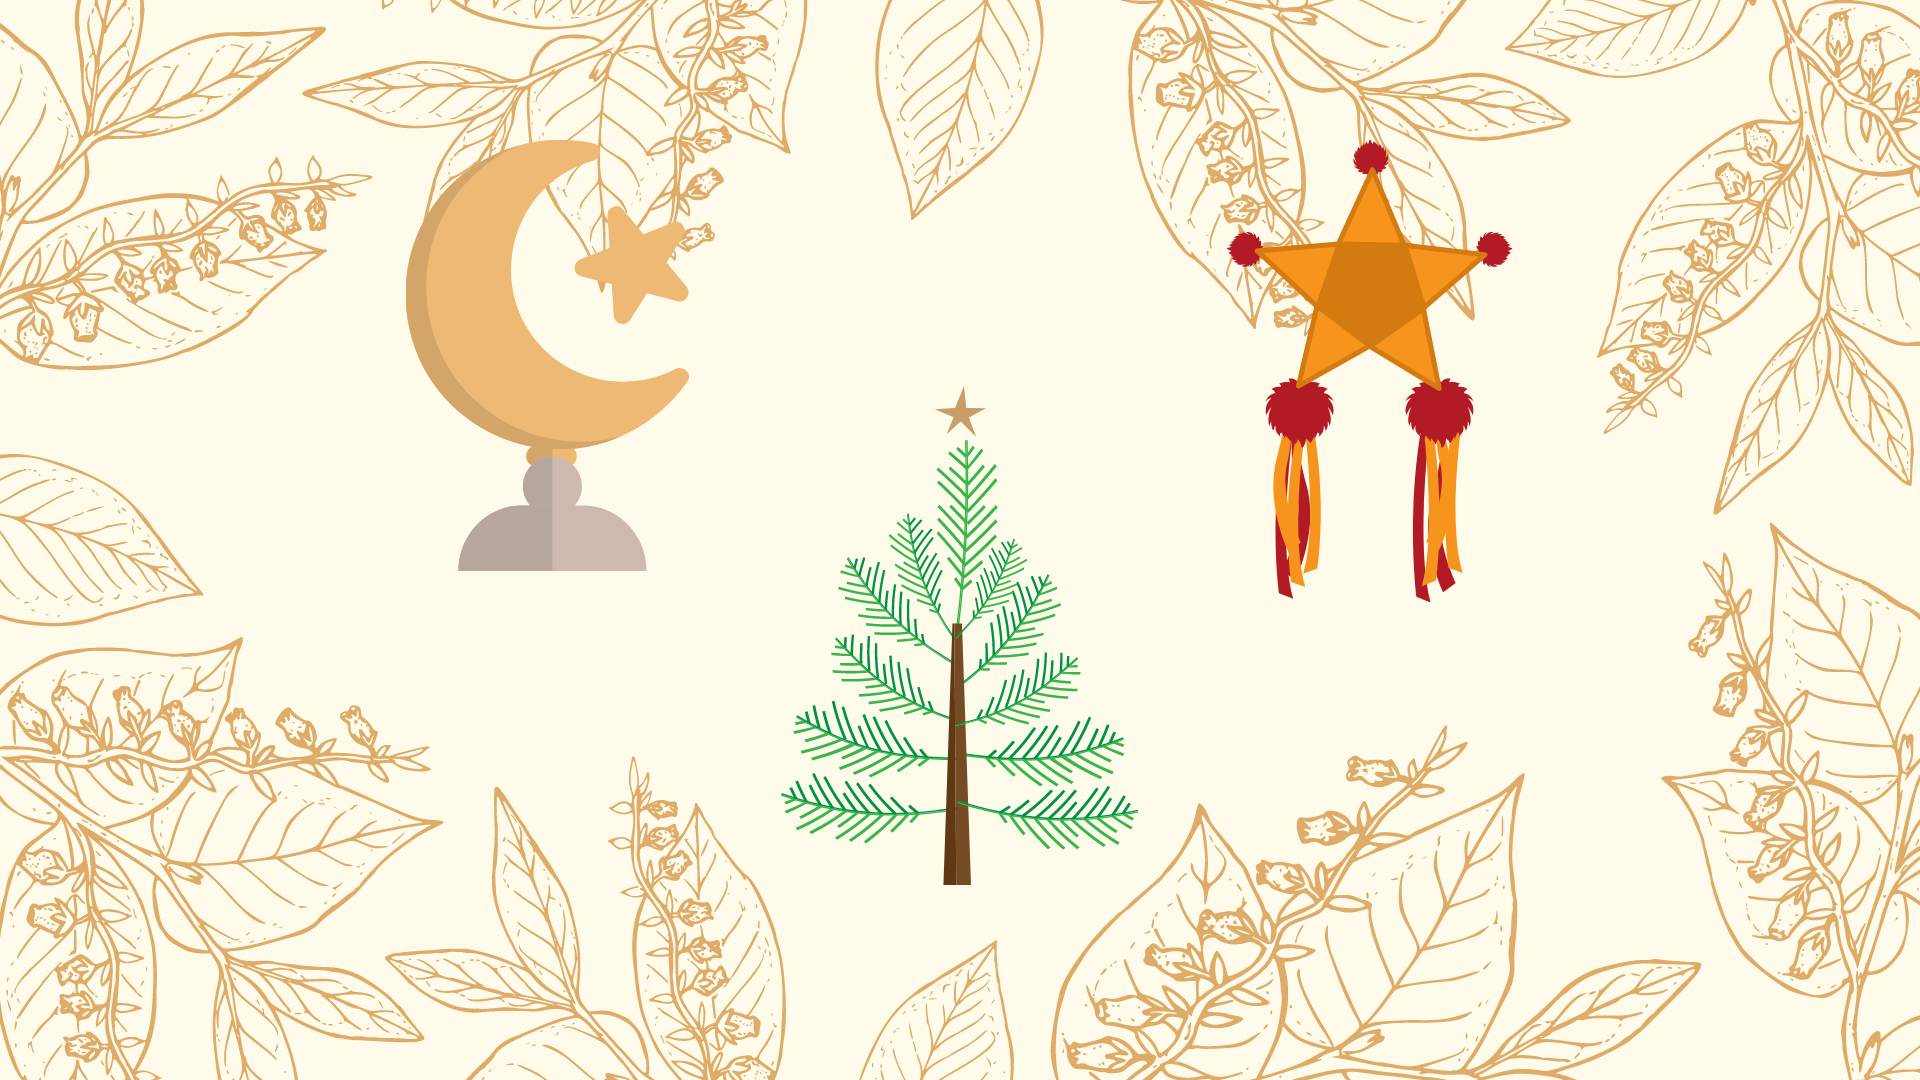 Drawing of holiday symbols